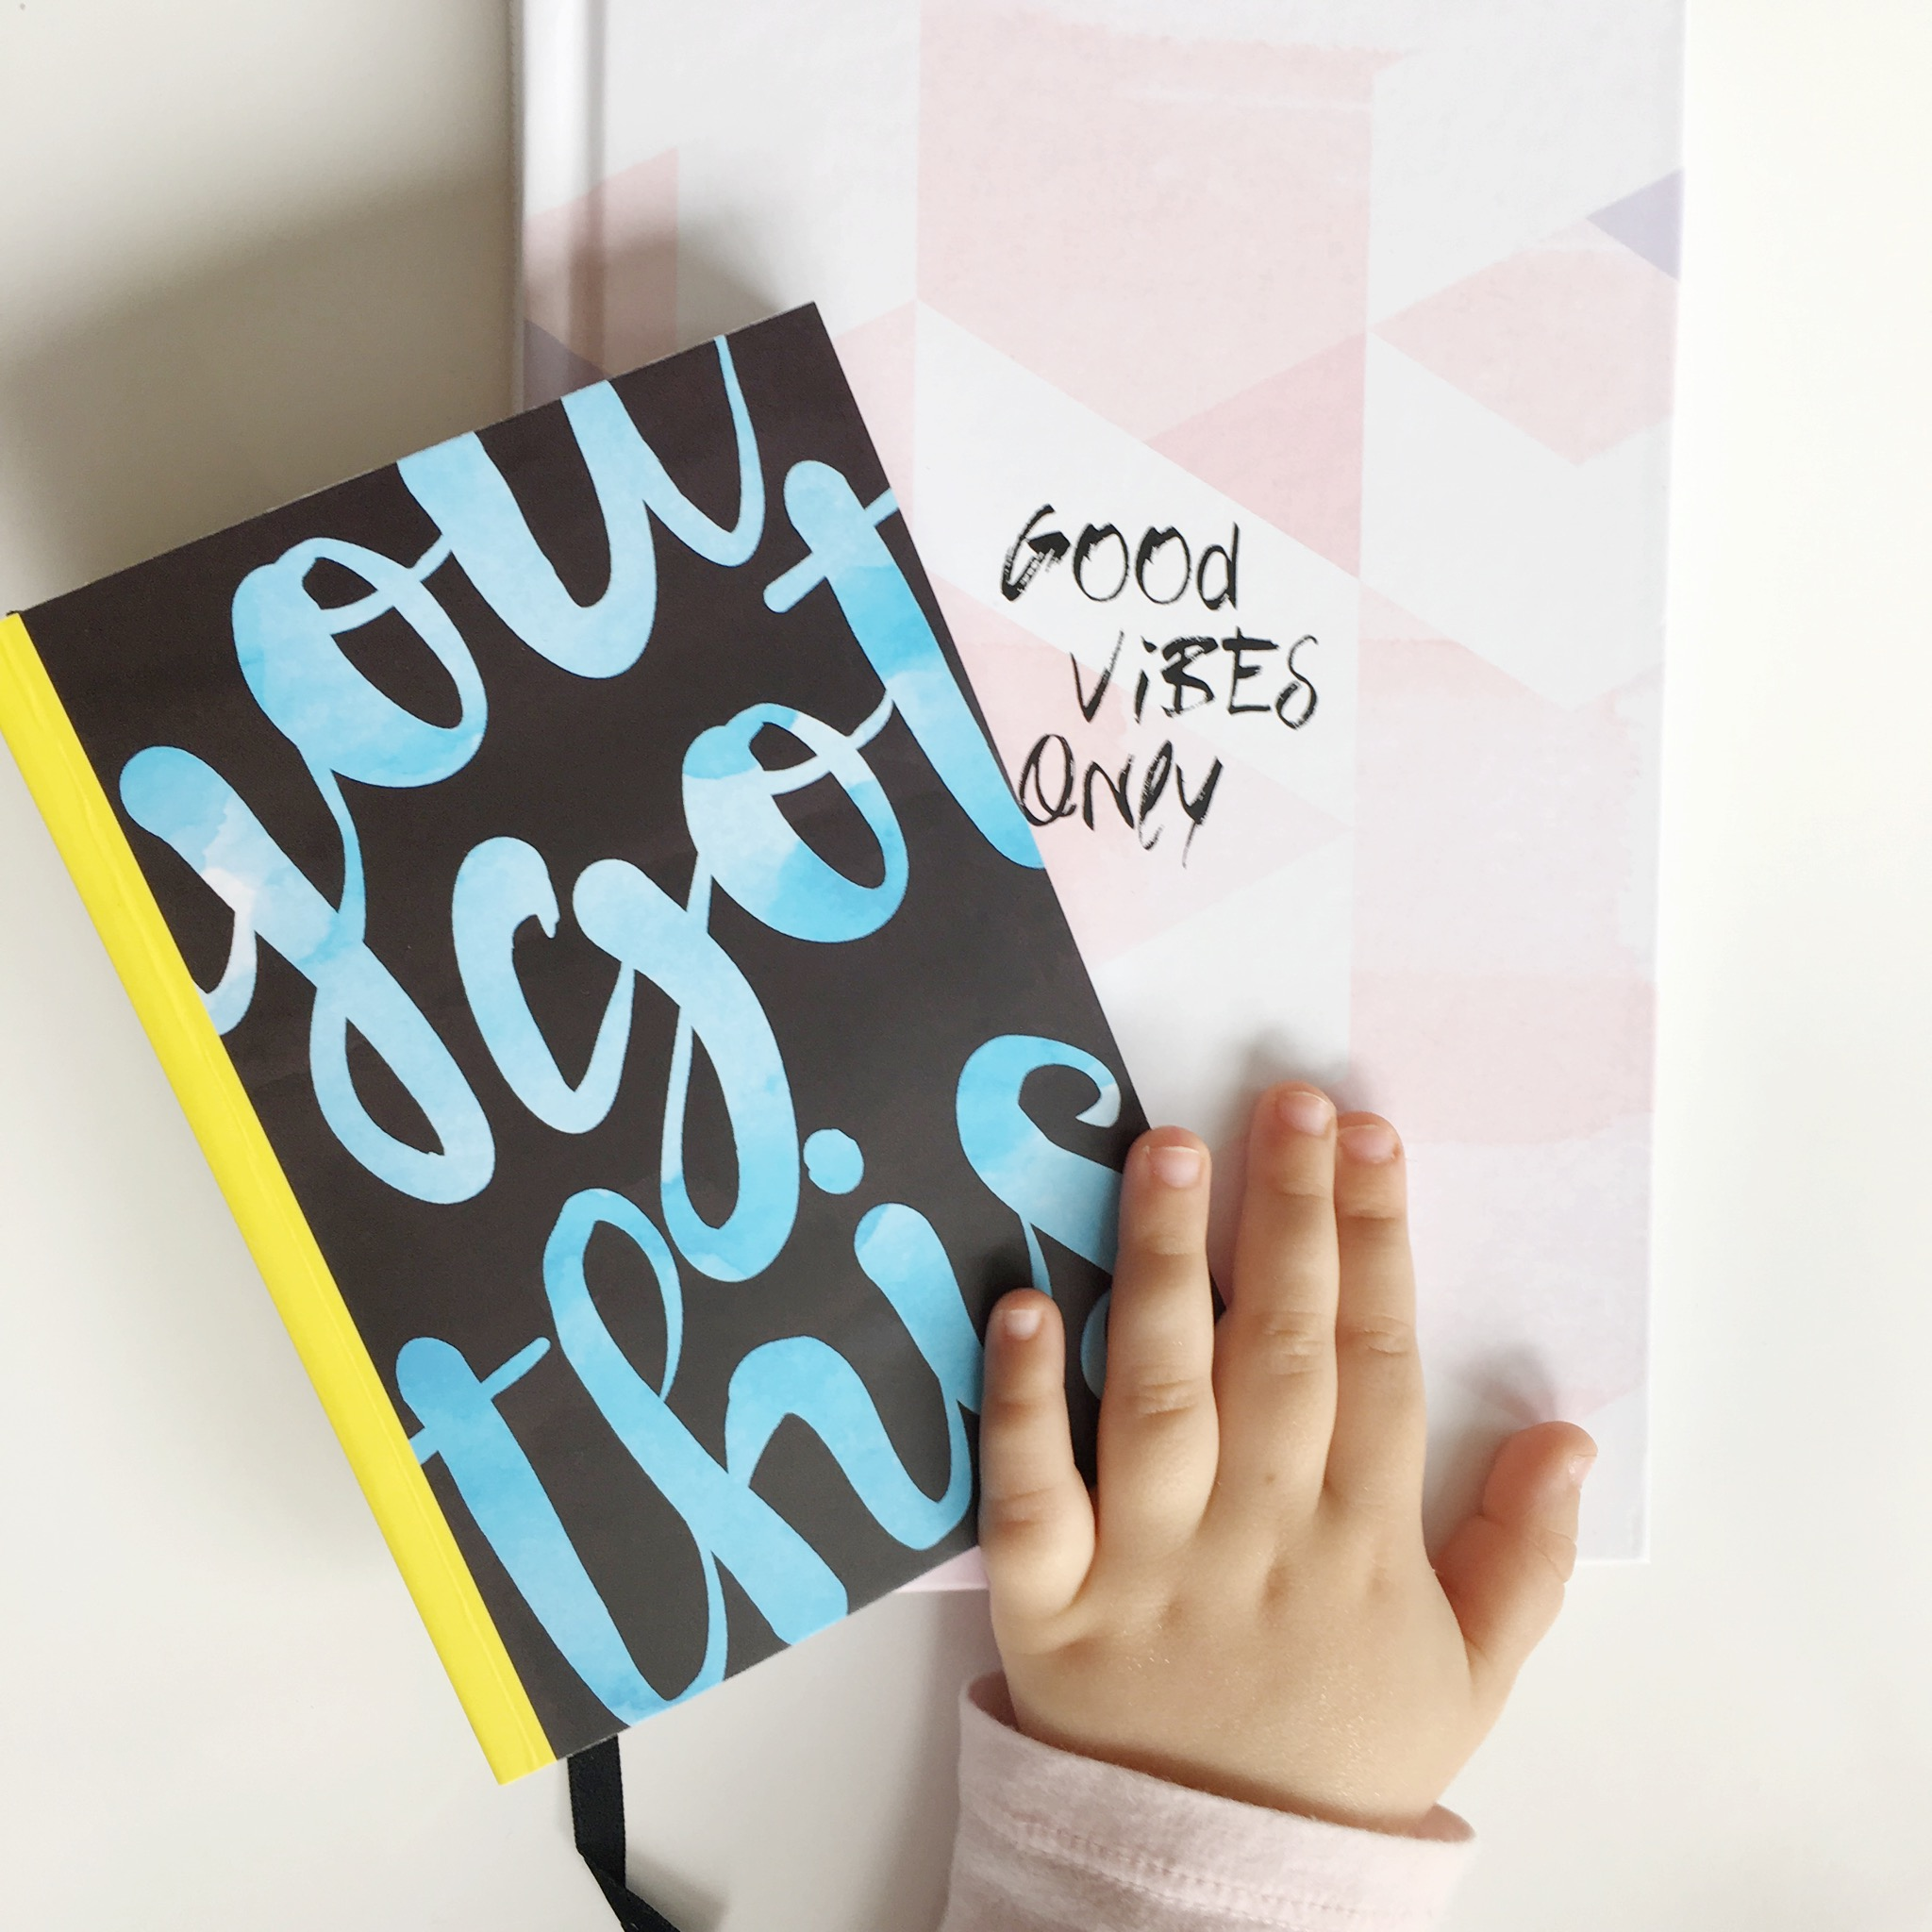 Childs hand with journal